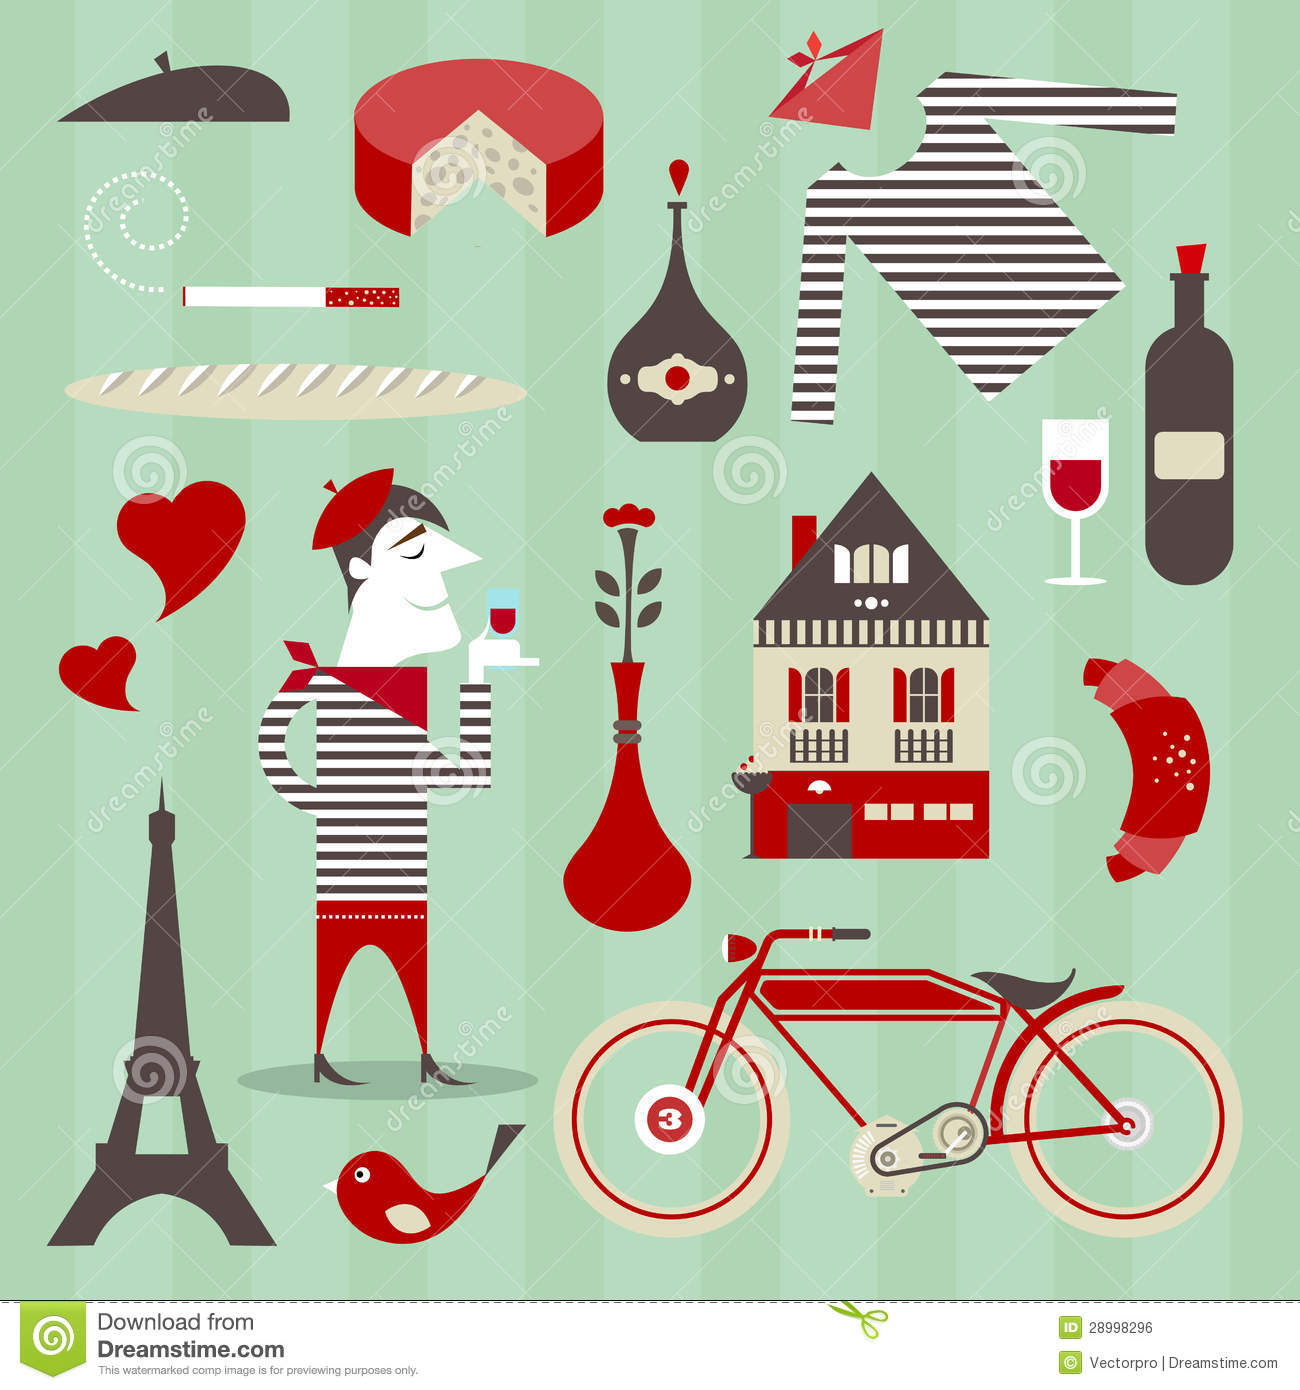 French Icons Royalty Free Stock Image - Image: 28998296